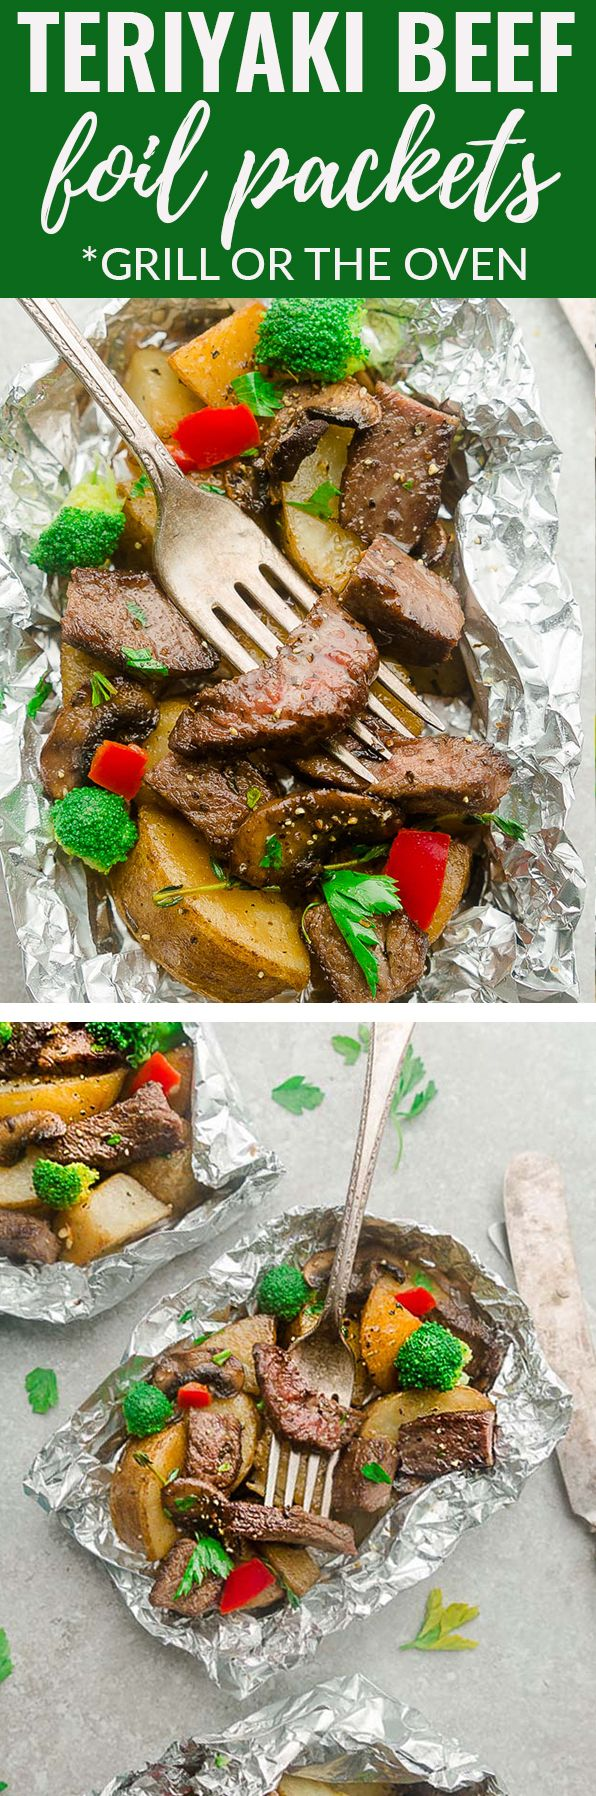 Teriyaki Beef Foil Packets Are The Perfect Easy Meal That You Can Make For Barbecue Season Or A Busy Weeknight Be Teriyaki Beef Foil Dinners Foil Packet Meals